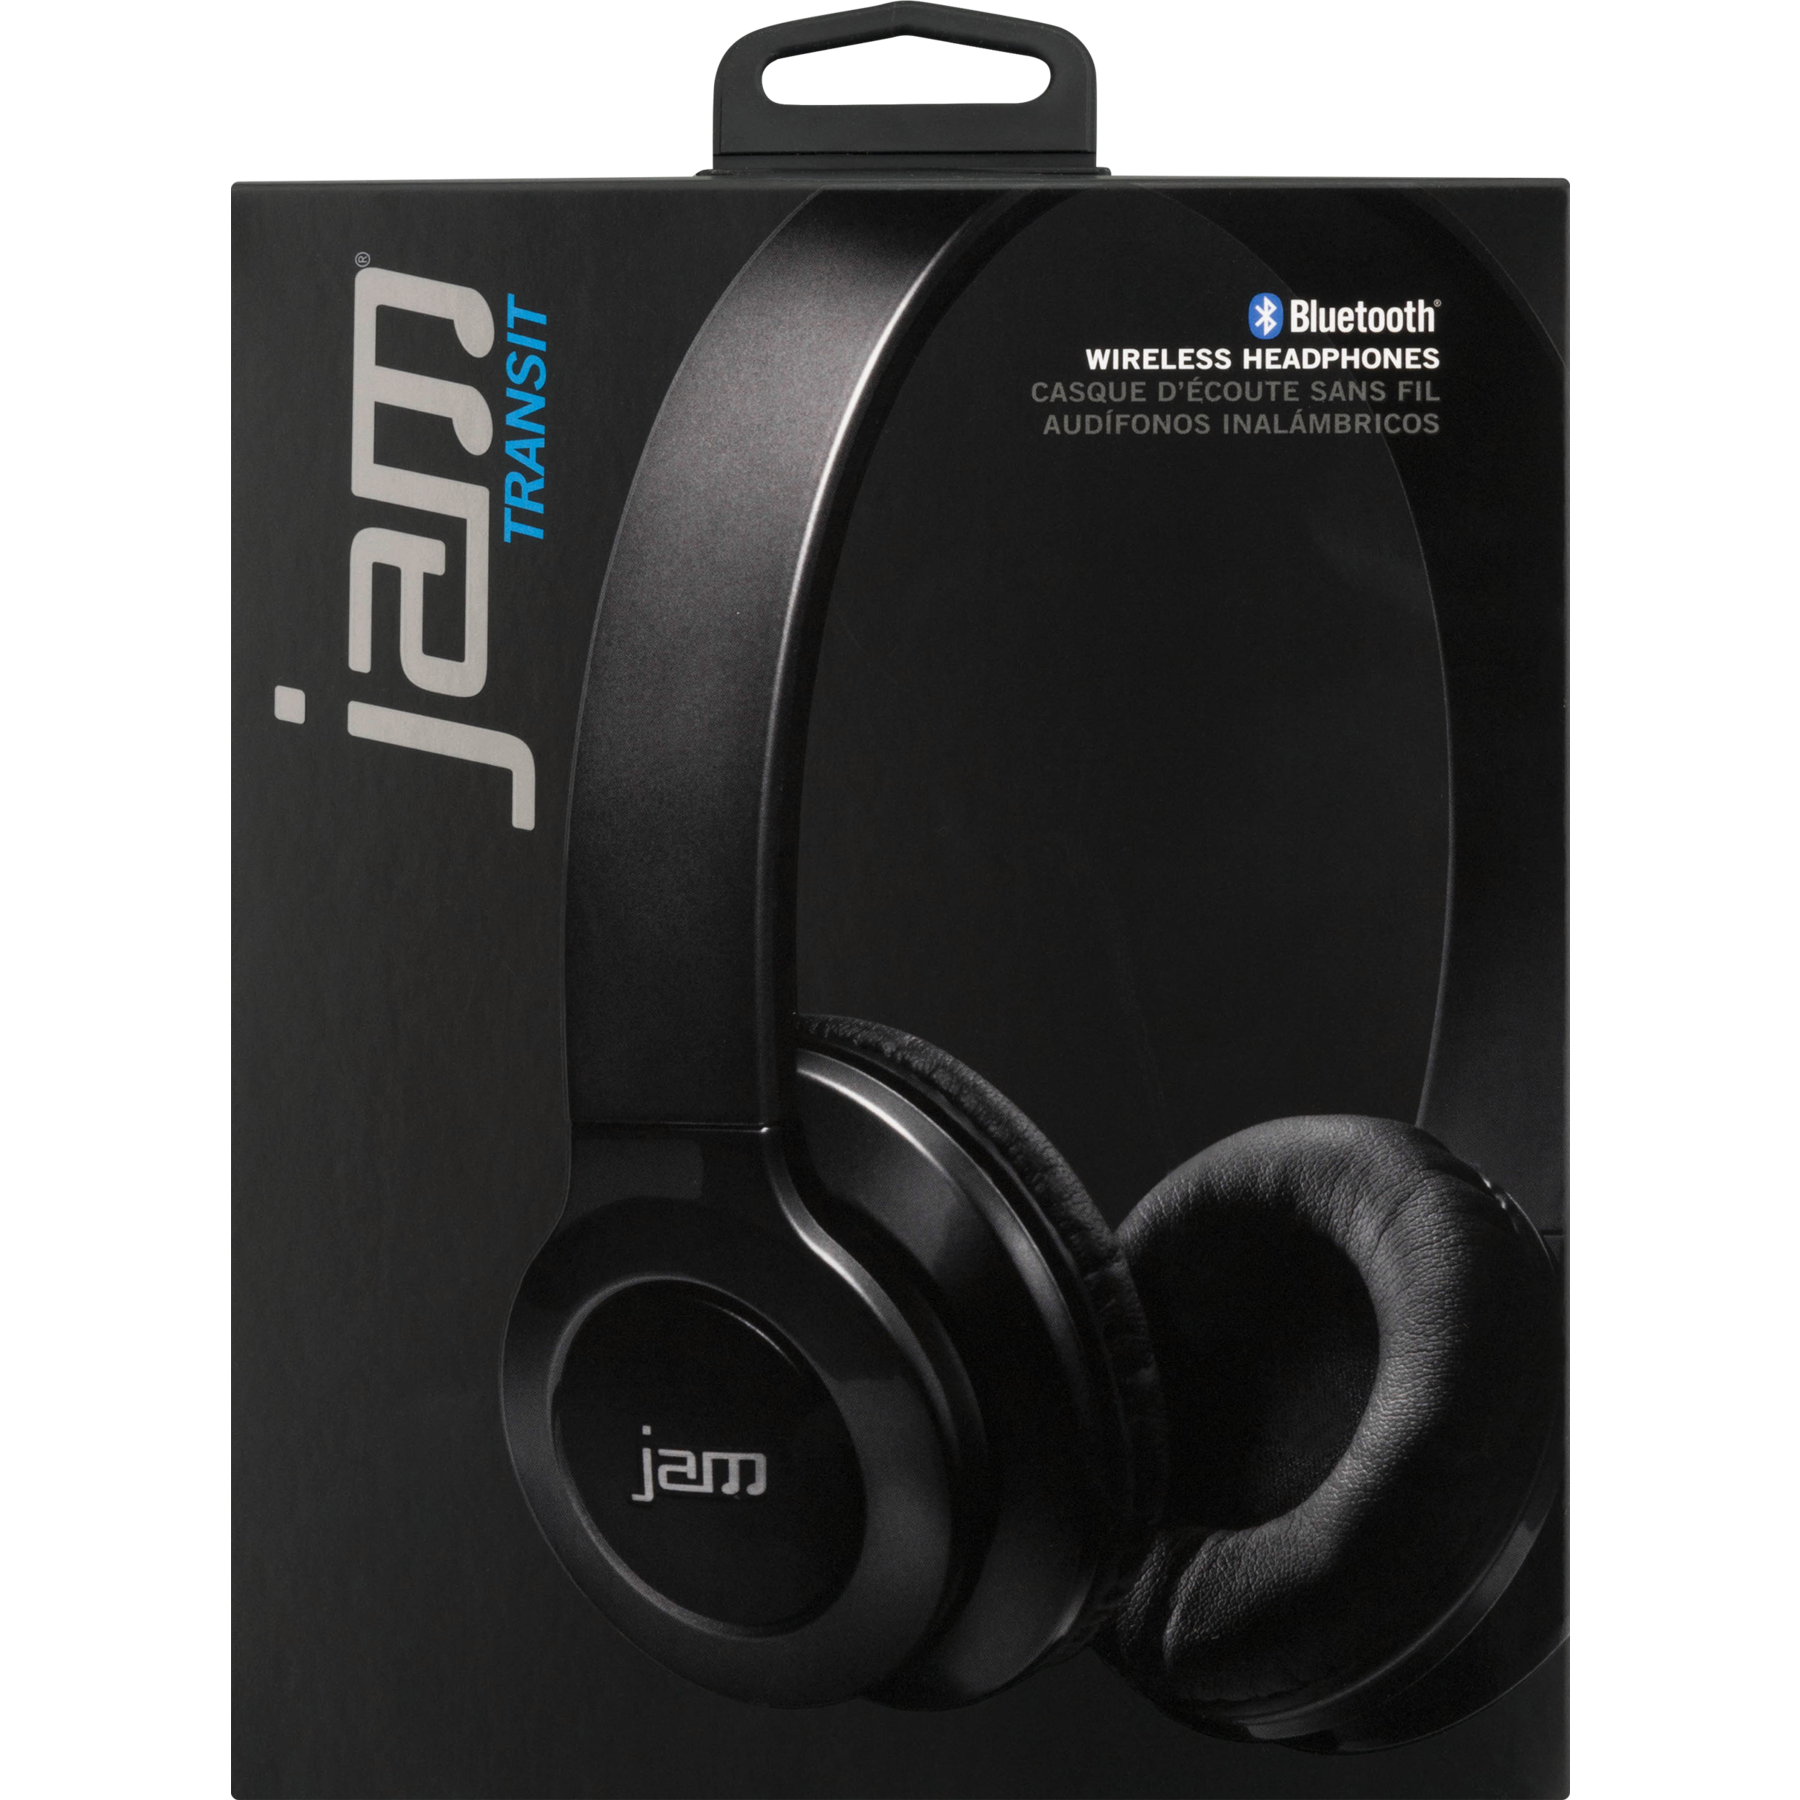 Jam Transit Bluetooth Wireless Headphones 1 0 Ct Walmart Com Walmart Com